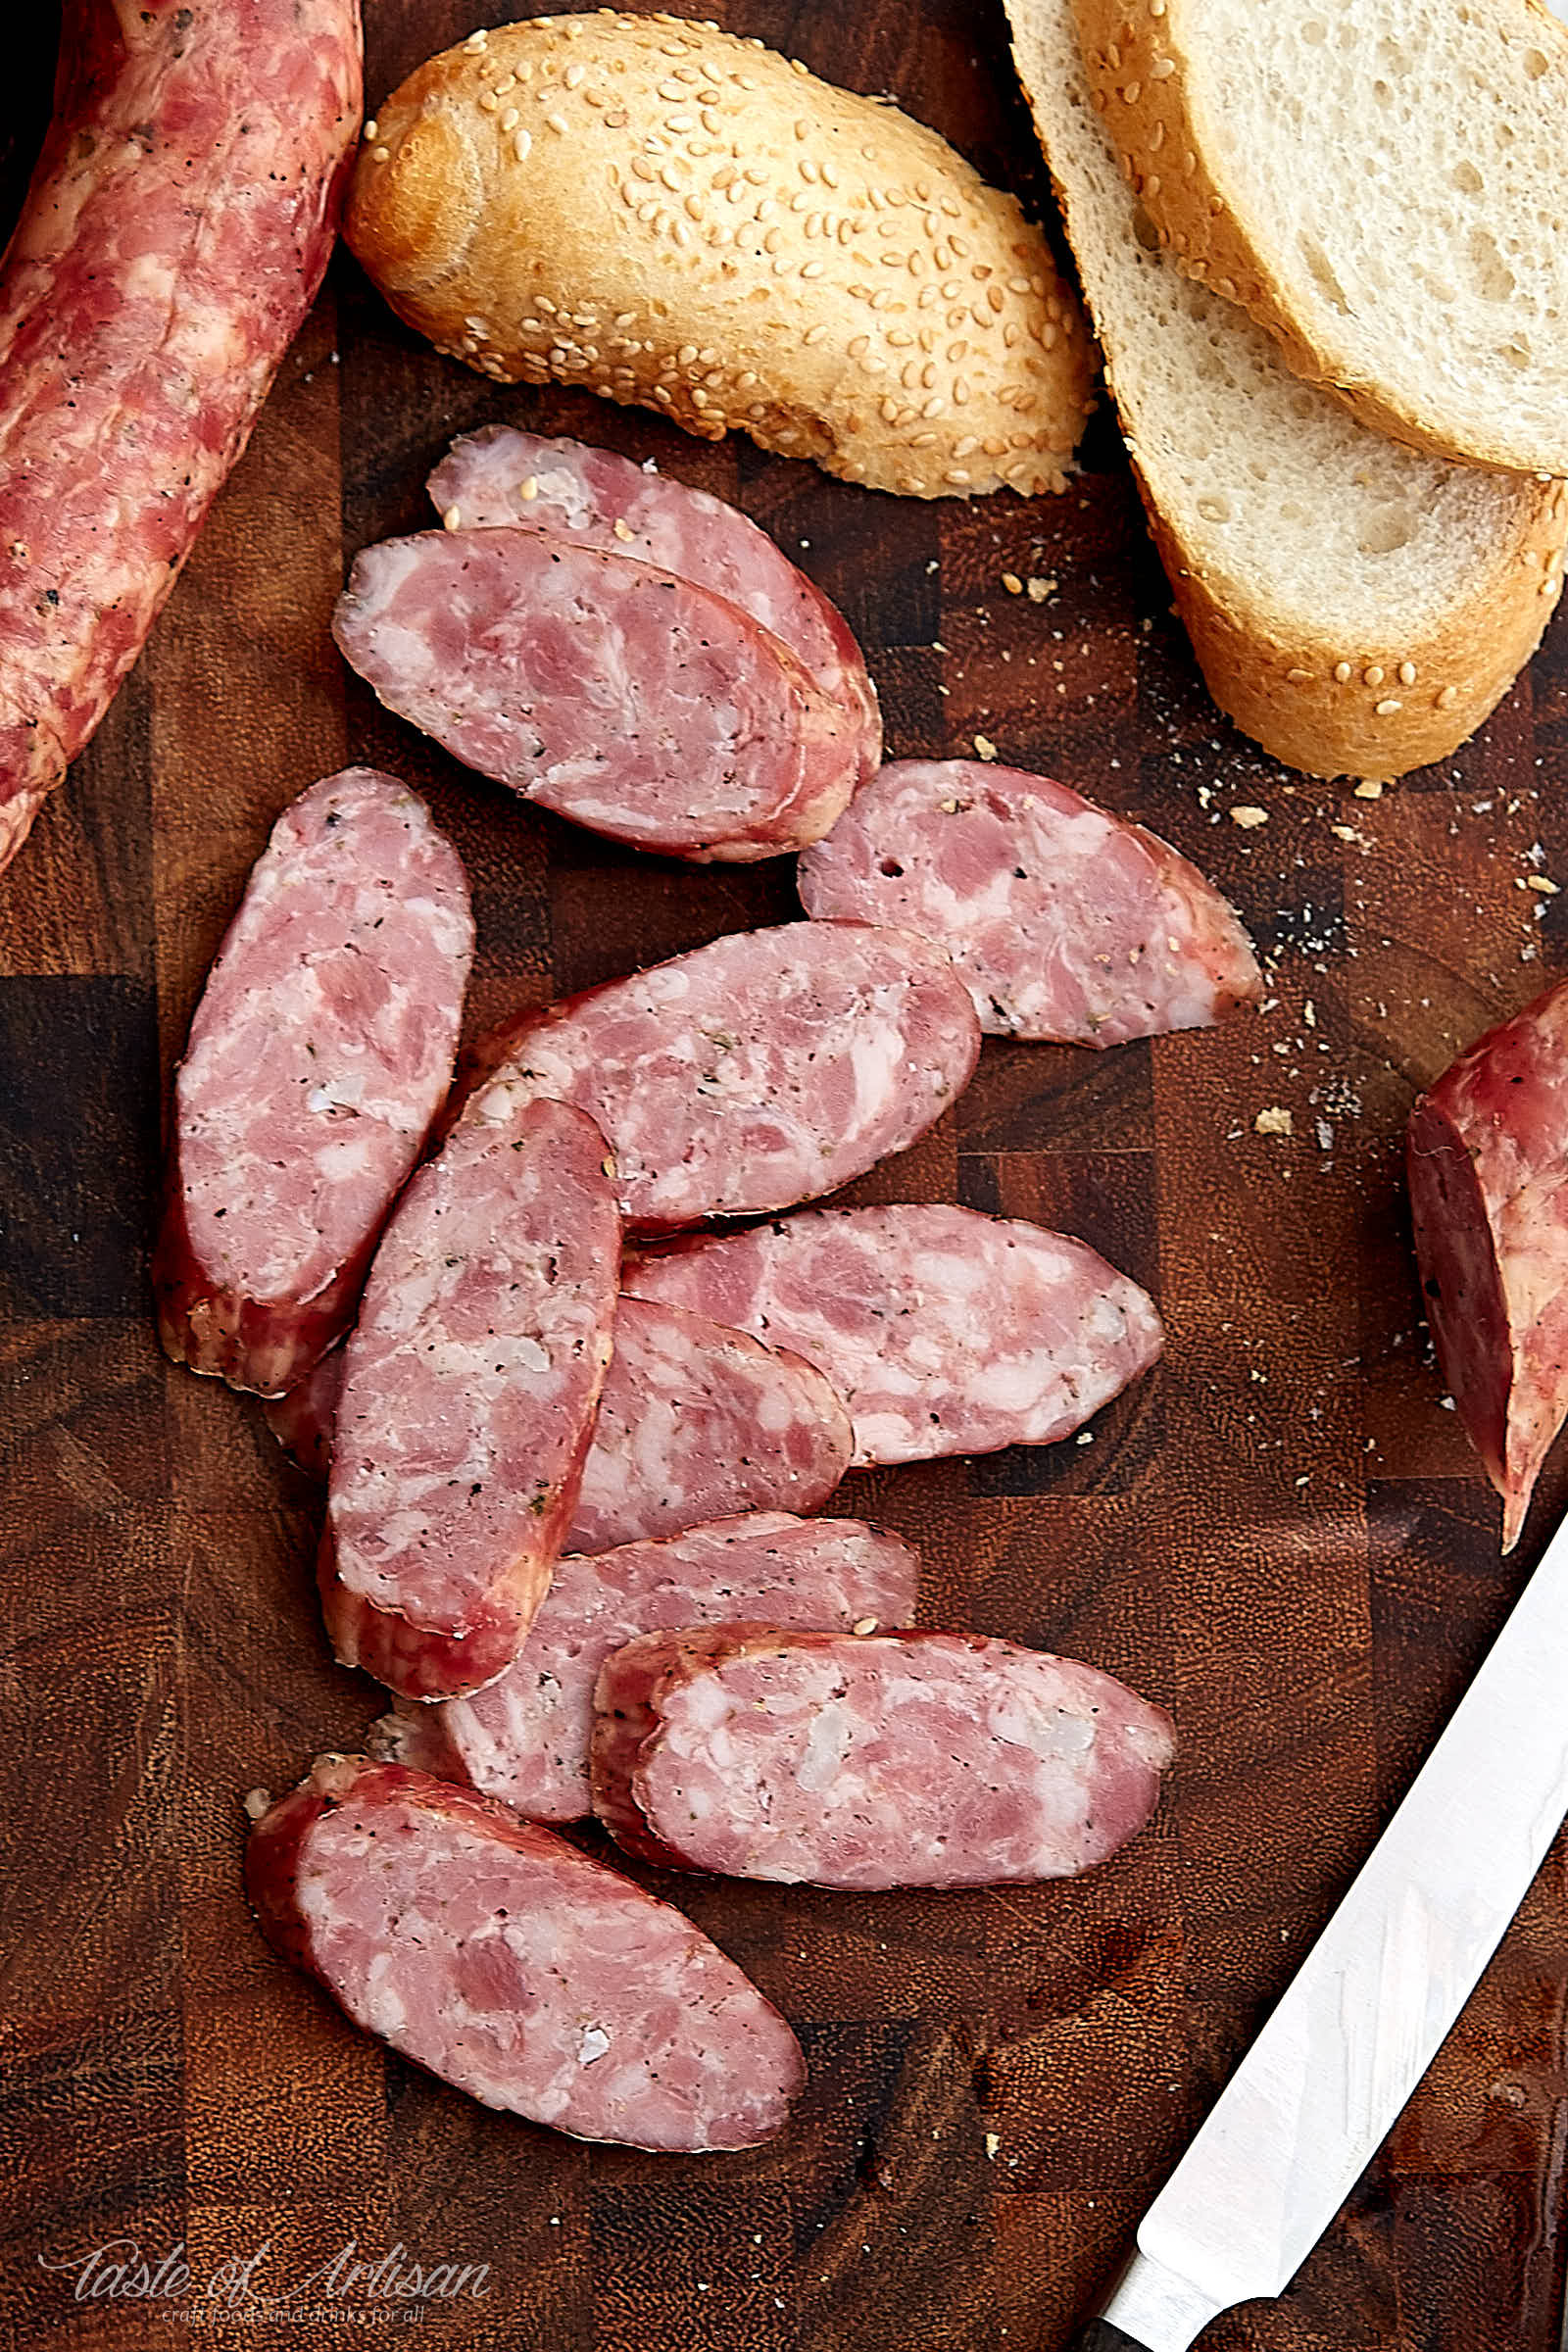 Learn how to make authentic Polish kielbasa (sausage) at home. The name of this kielbasa is Swojska, which means homemade or self-made. It's one of the best and most flavorful Polish sausages.| Taste of Artisan